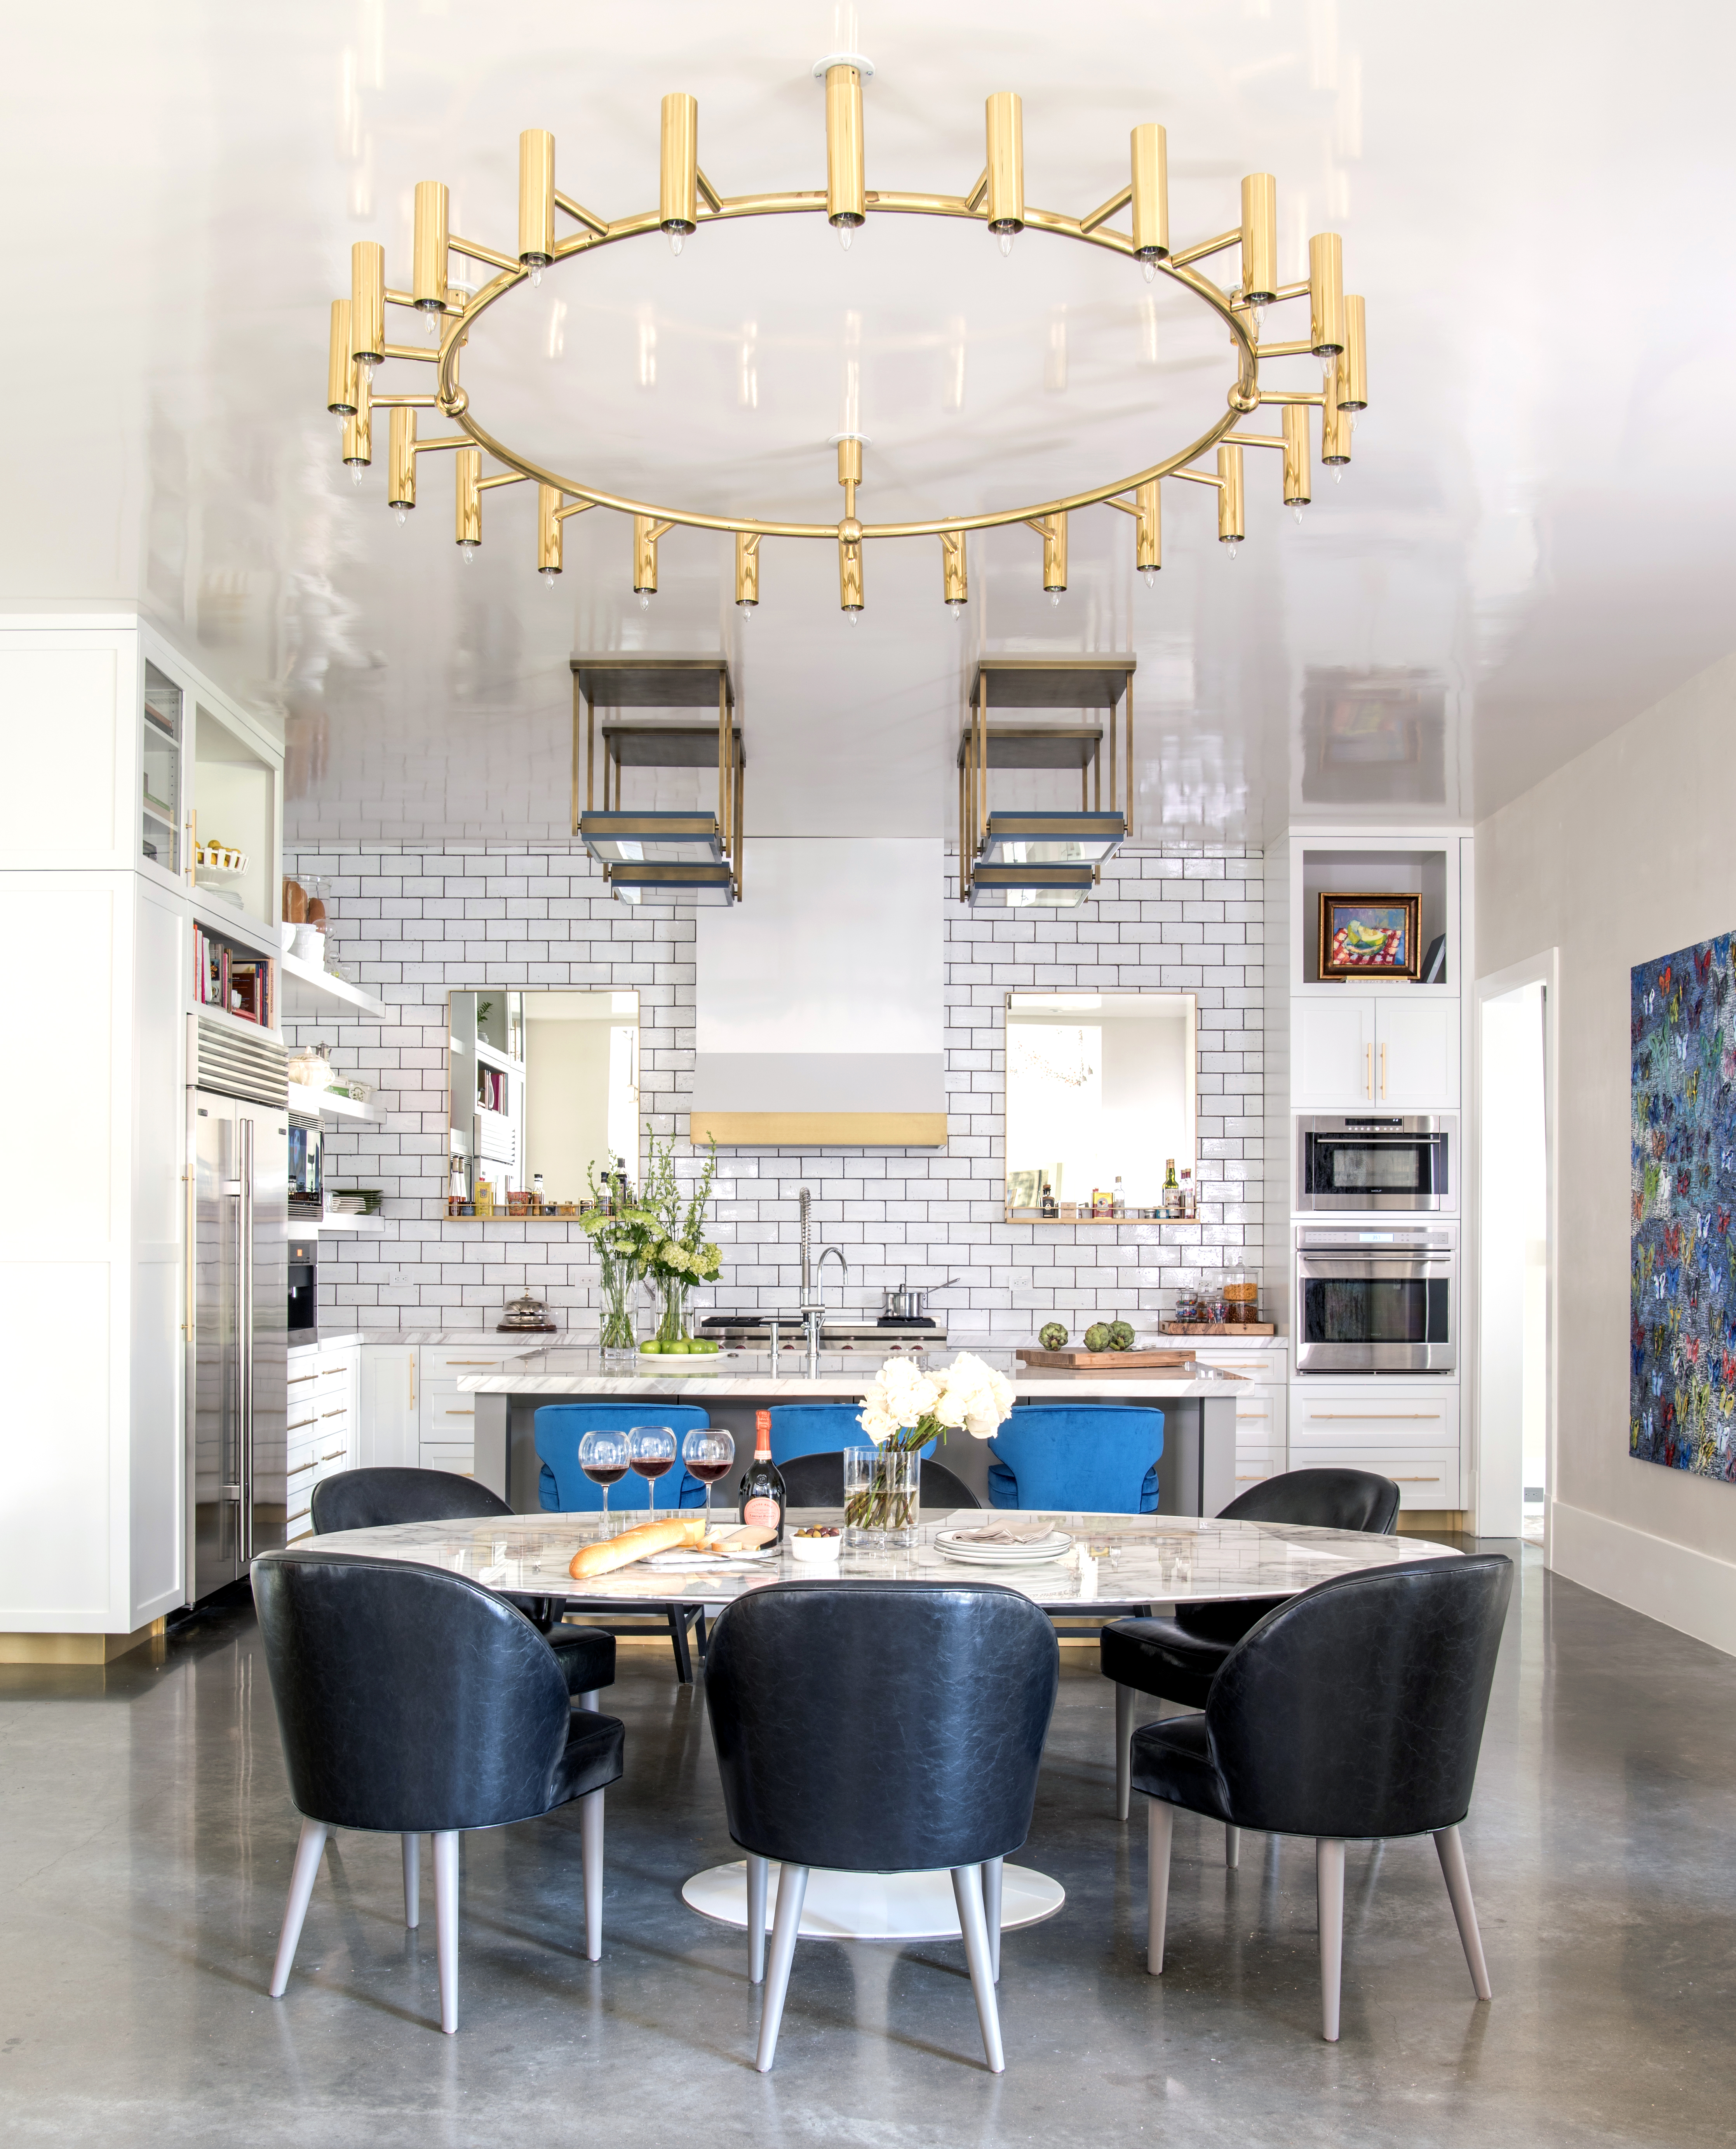 Dramatic white and gold open kitchen with large metallic accents light fixture - Laura U Interior Design